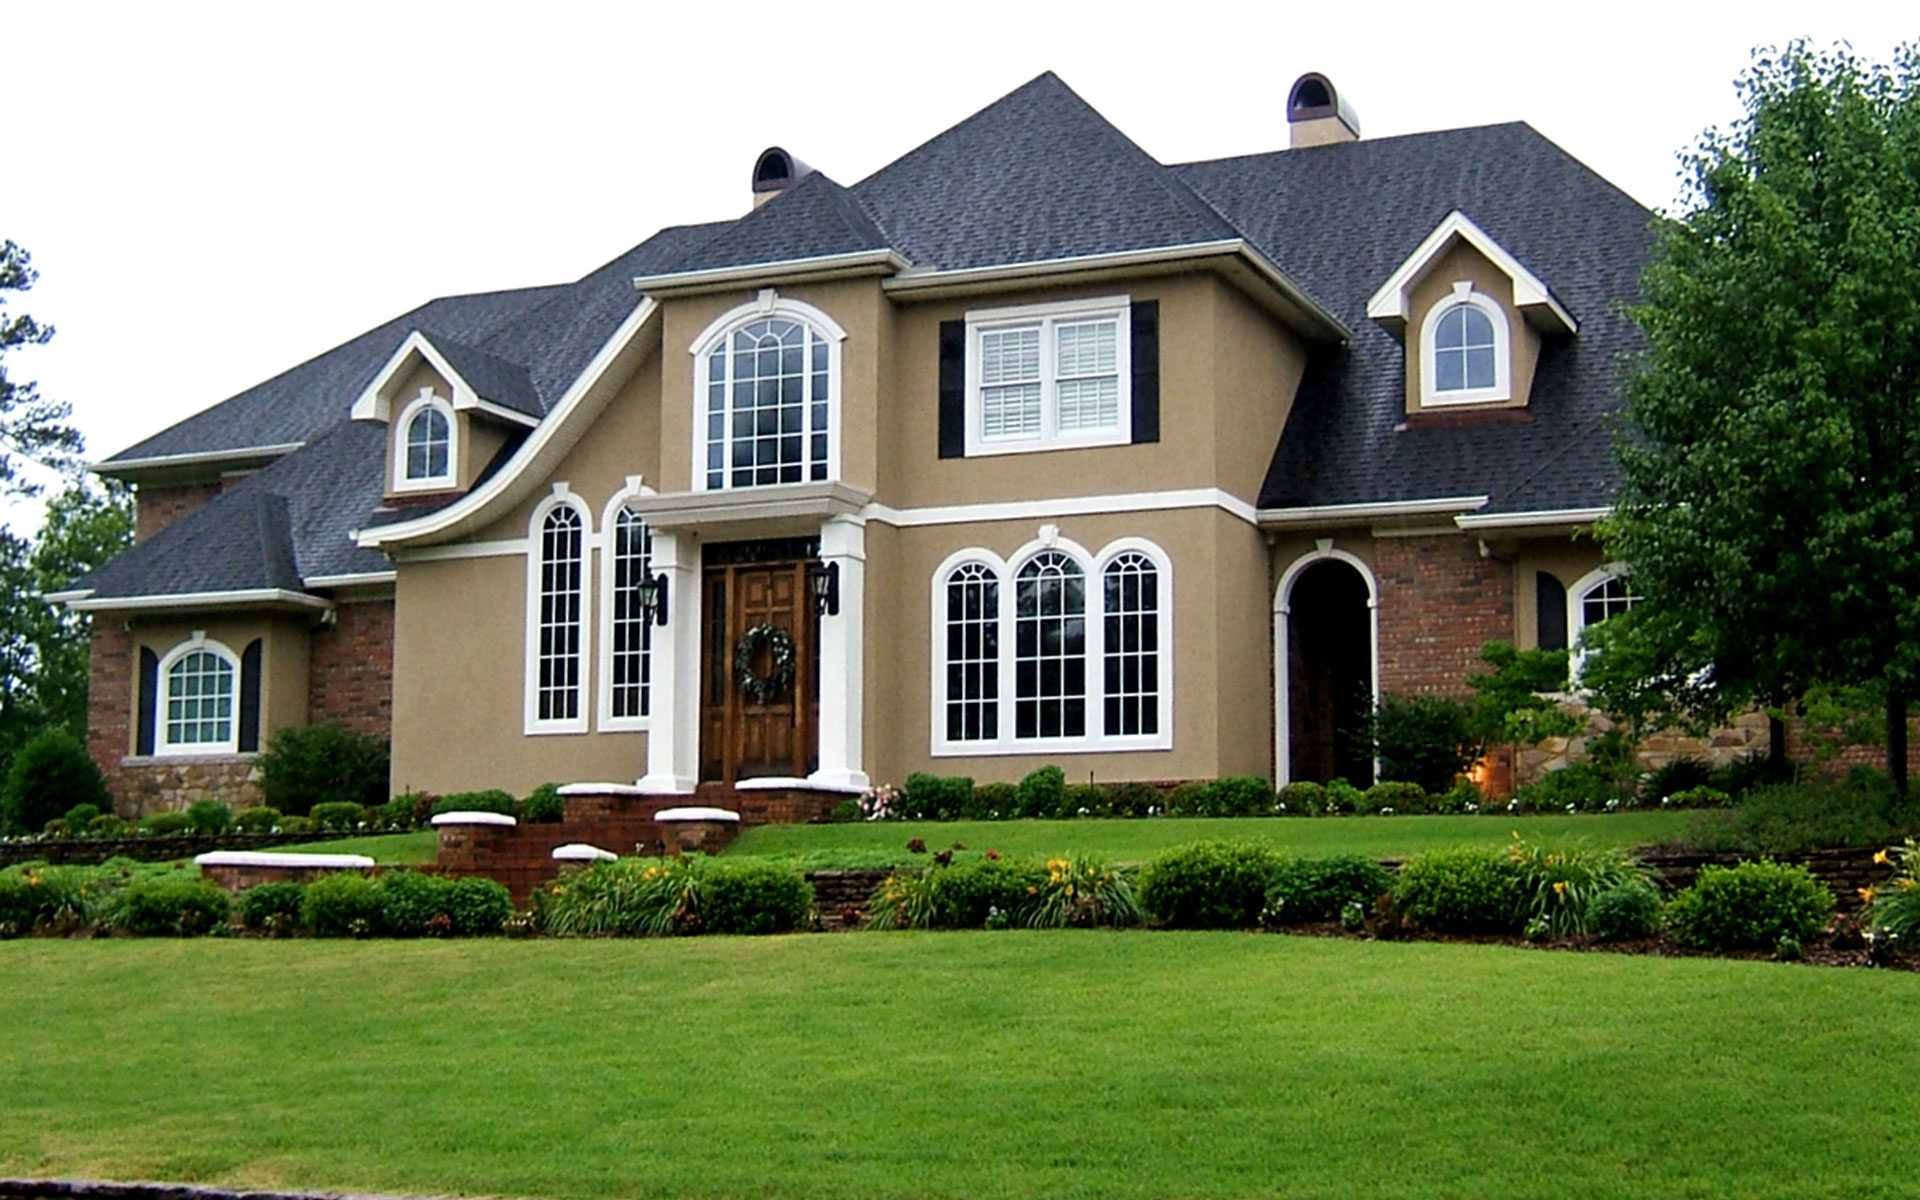 Best-Home-Remodeling-Ideas